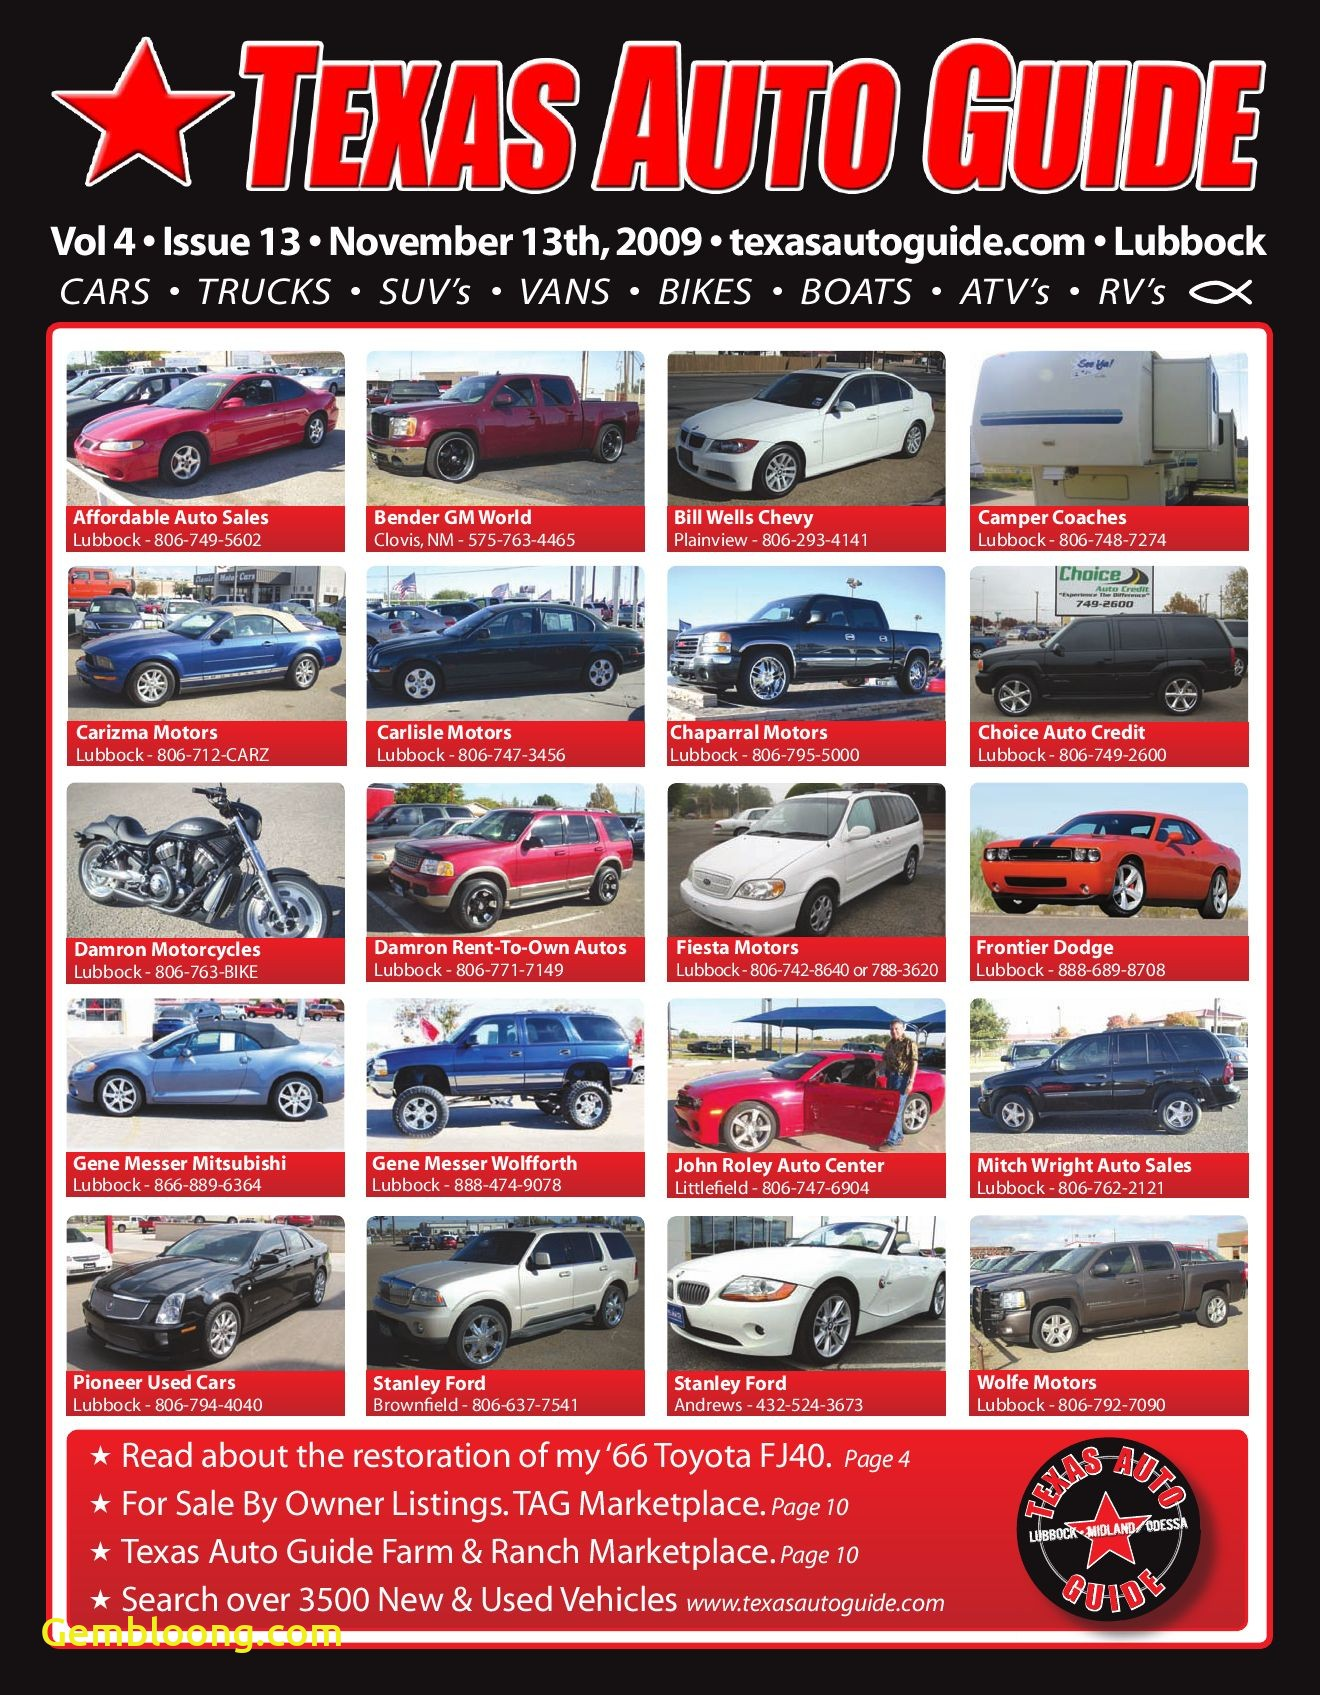 Infiniti Ex35 Best Of November issue Of Texas Auto Guide Lubbock by Texas Auto